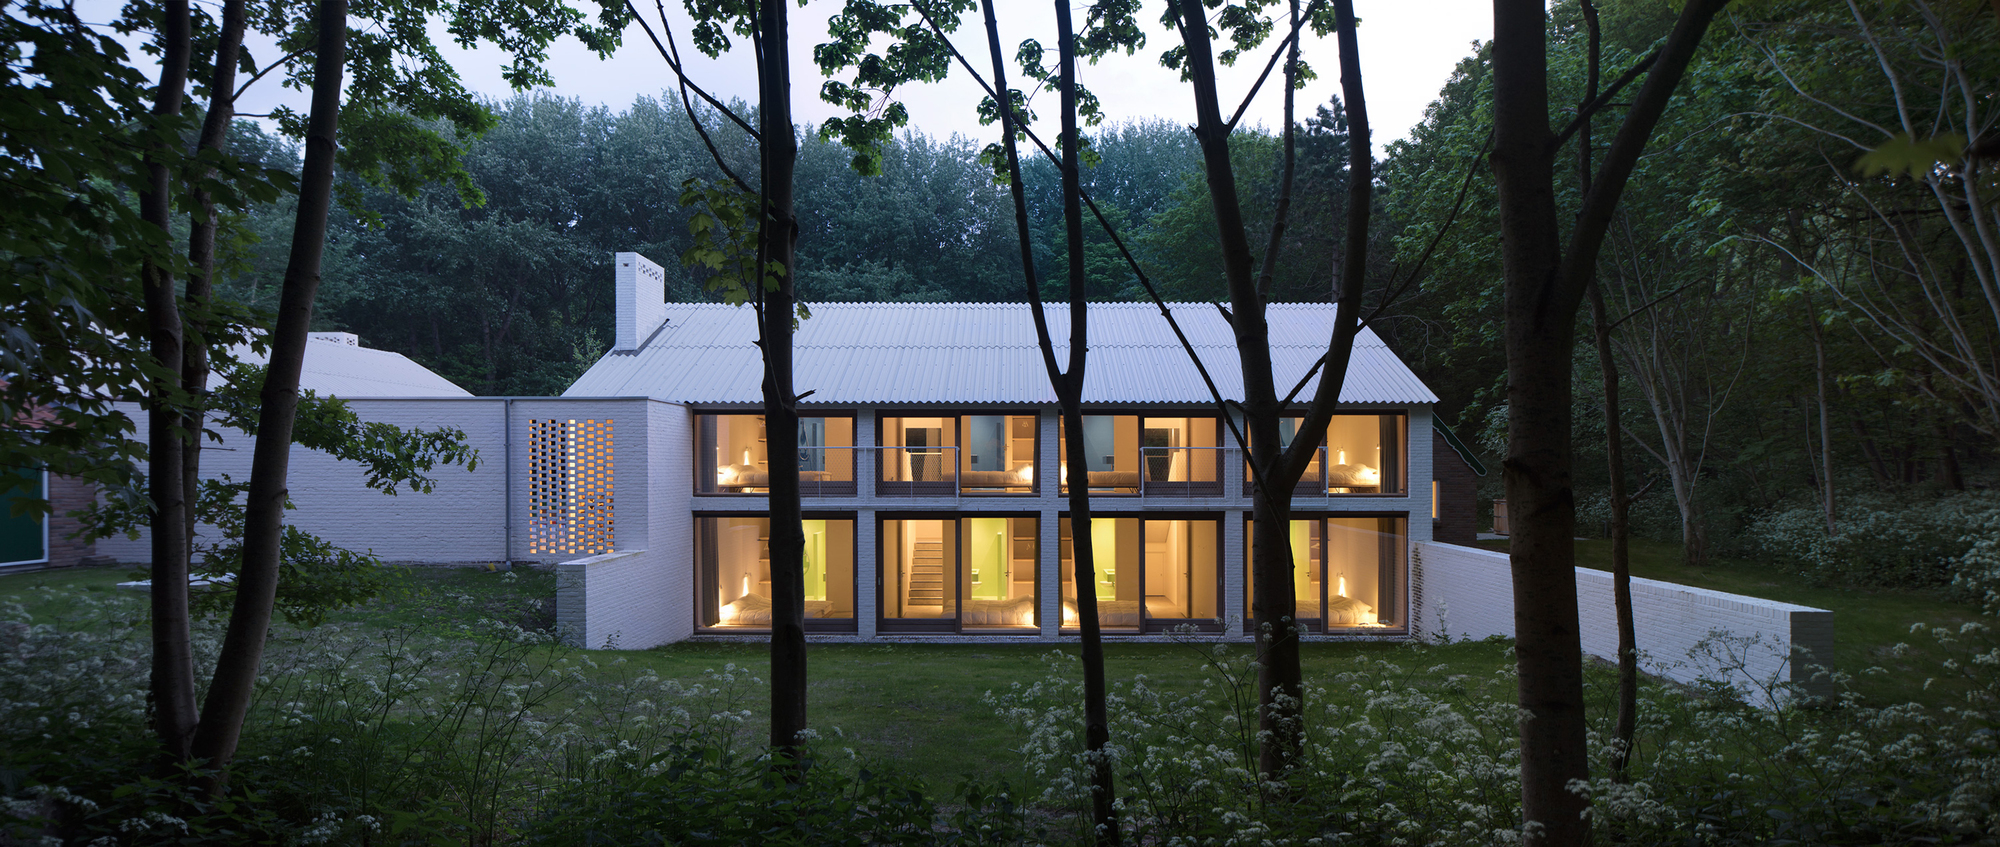 Gallery of house in the woods studio nauta 6 - The house in the woods ...